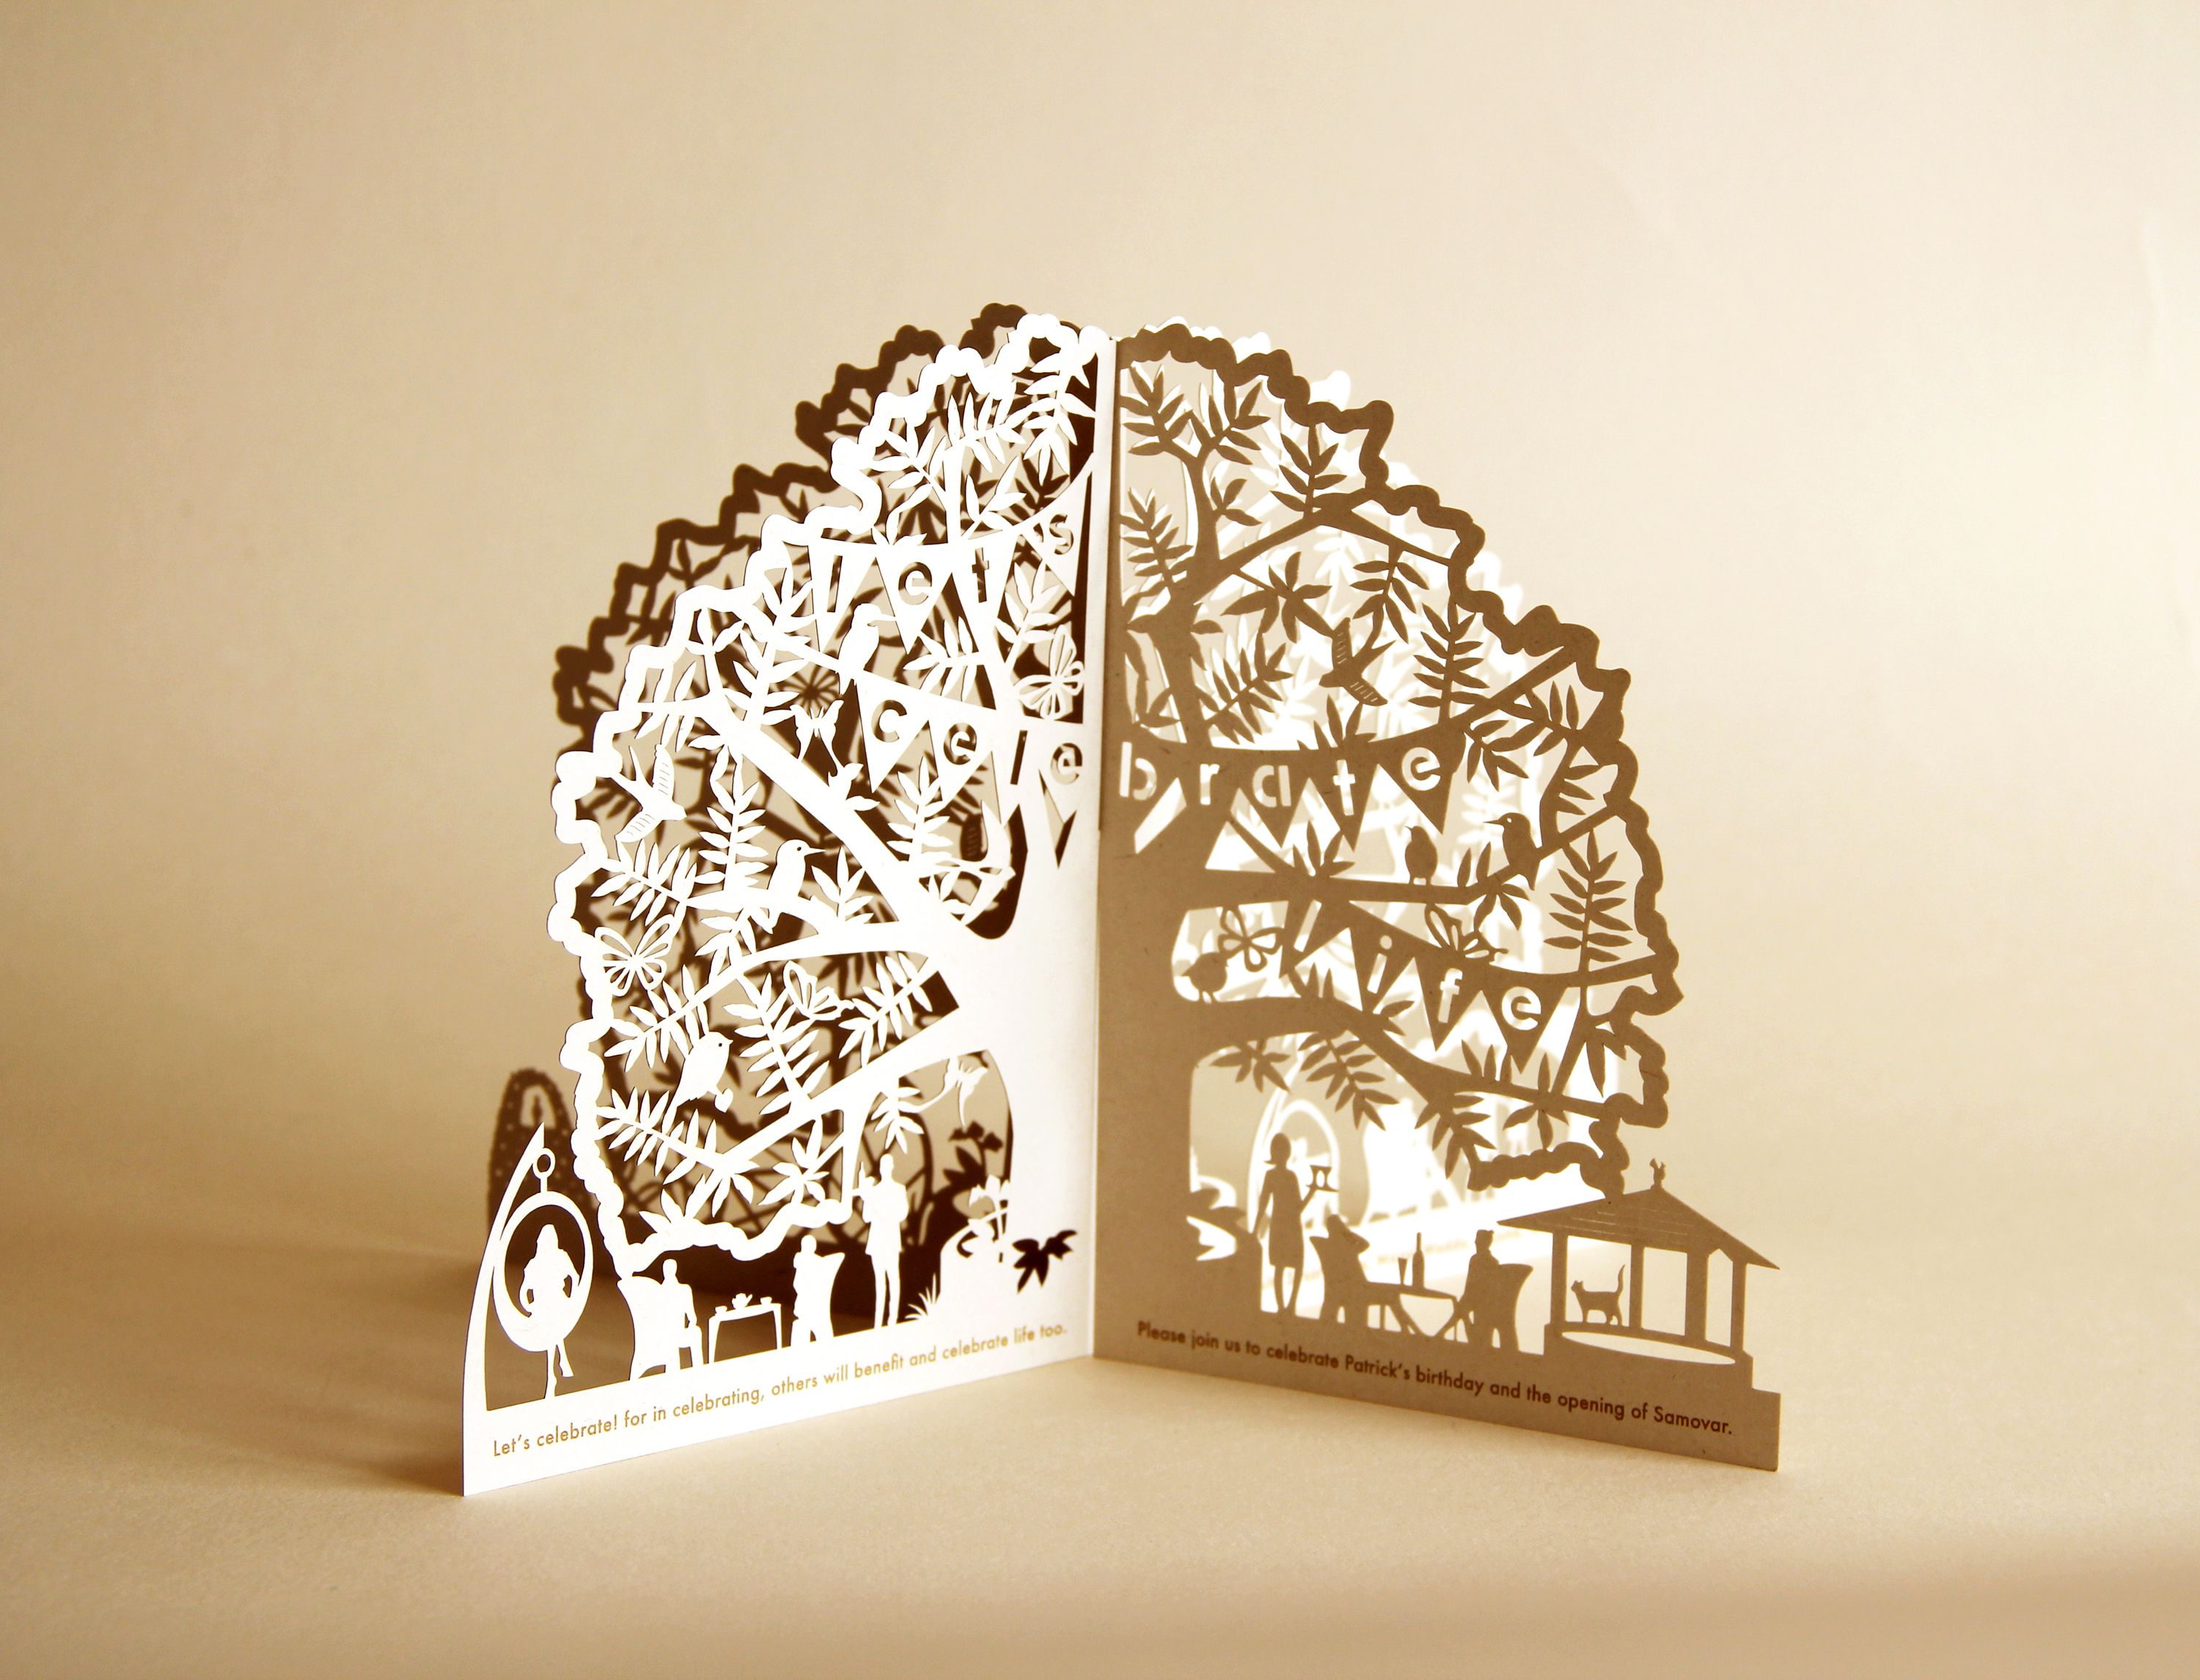 Banyan Tree Restaurant Invite | Company ideas | Pinterest | Laser ... for Laser Cut Designs Paper  66pct